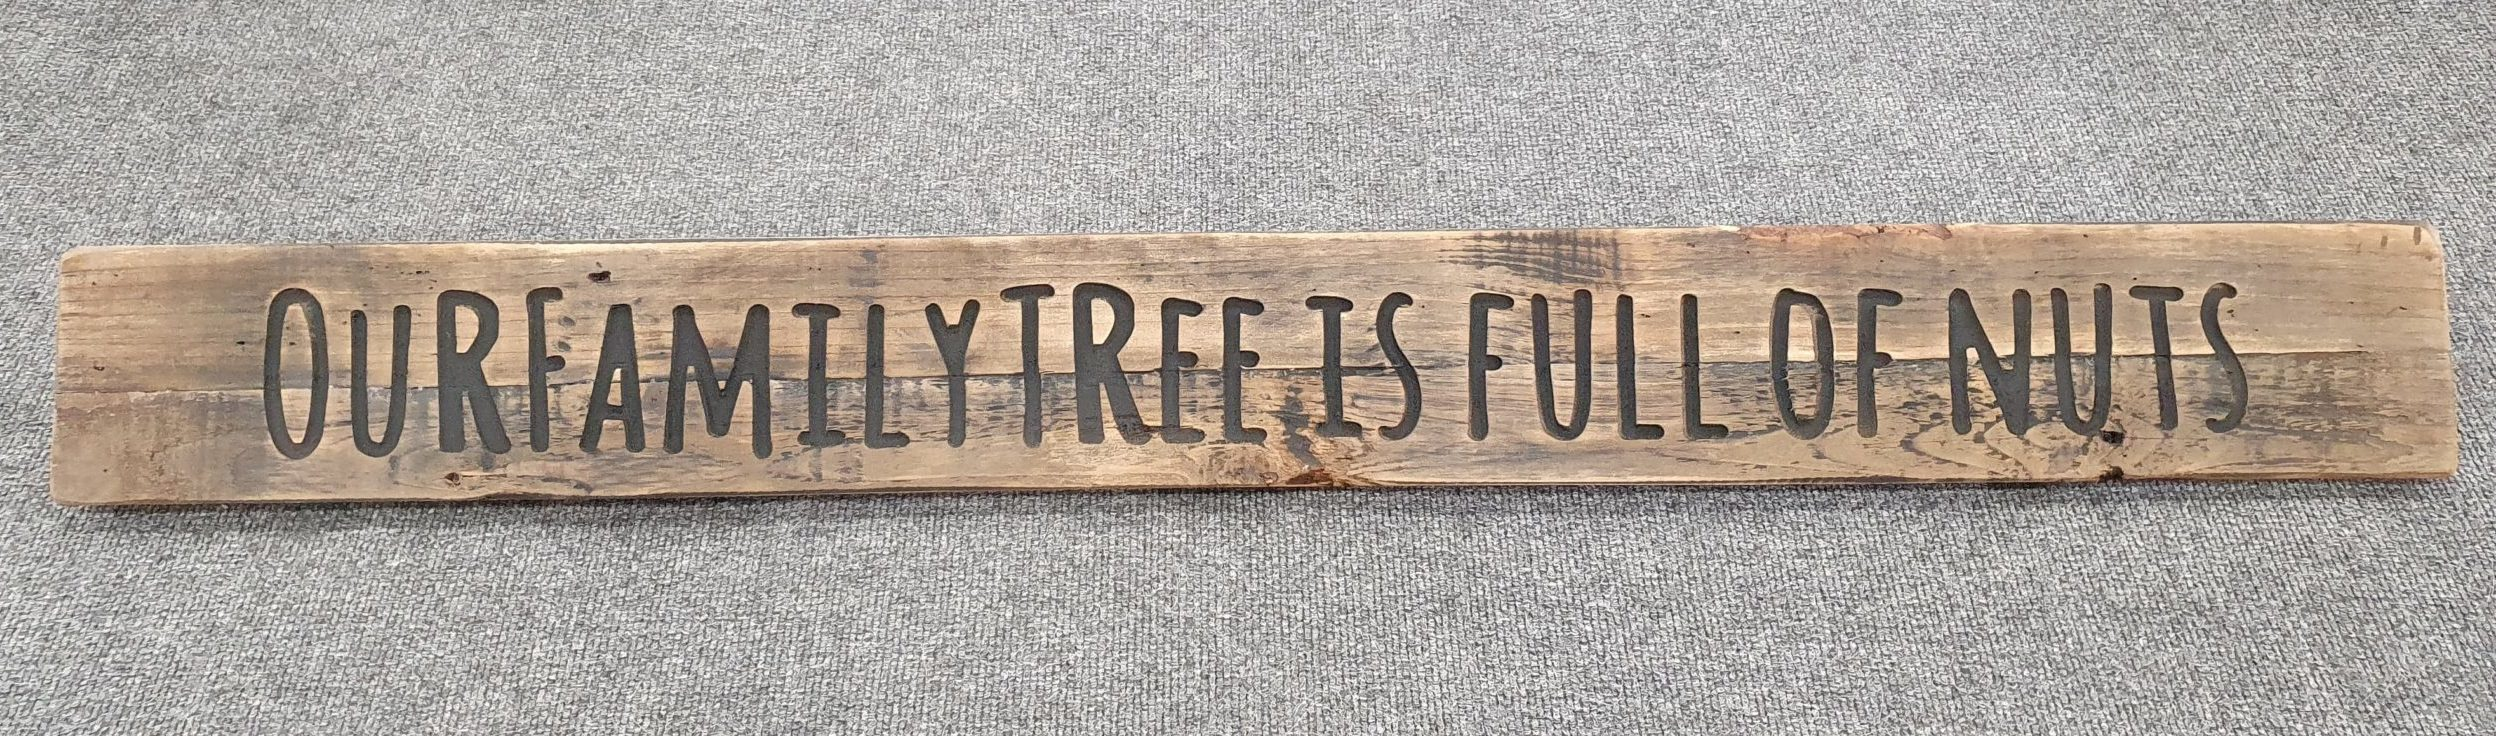 A Rustic Wooden Plaque quoting Our family tree is full of nuts, engraved in capital letters